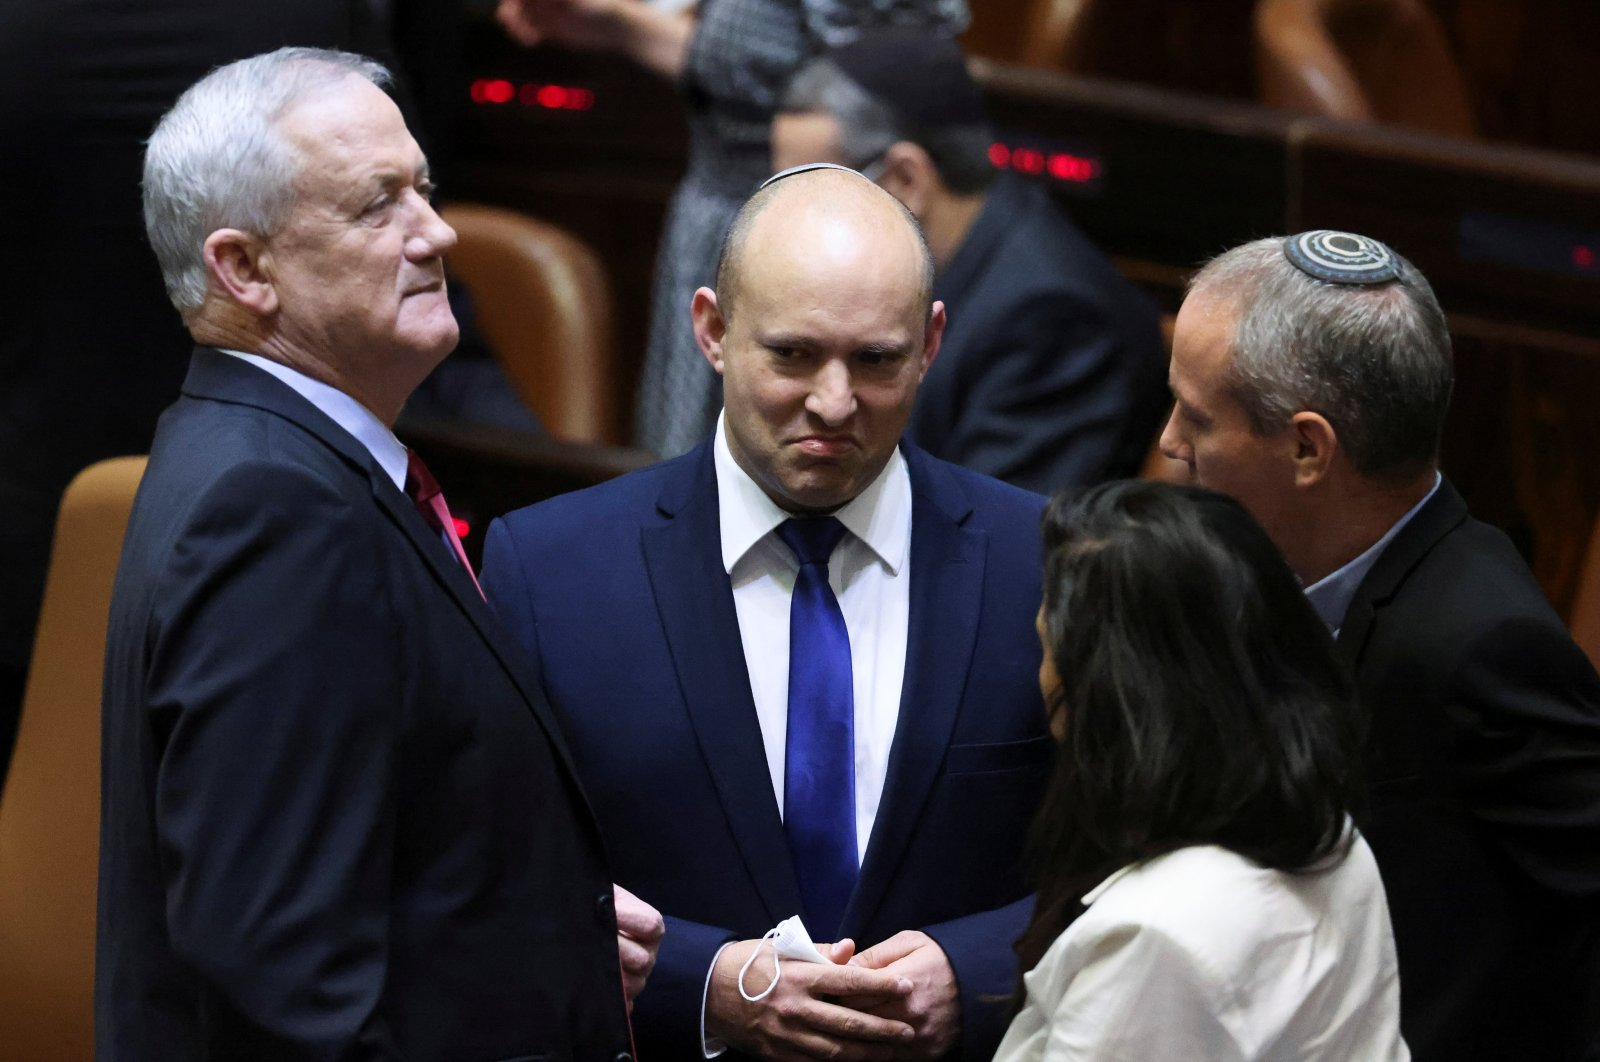 Defense Minister and leader of Blue and White party Benny Gantz (L) speaks to Yamina leader Naftali Bennett (C) during a special session of the Knesset, Jerusalem, Israel, June 2, 2021. (Reuters Photo)